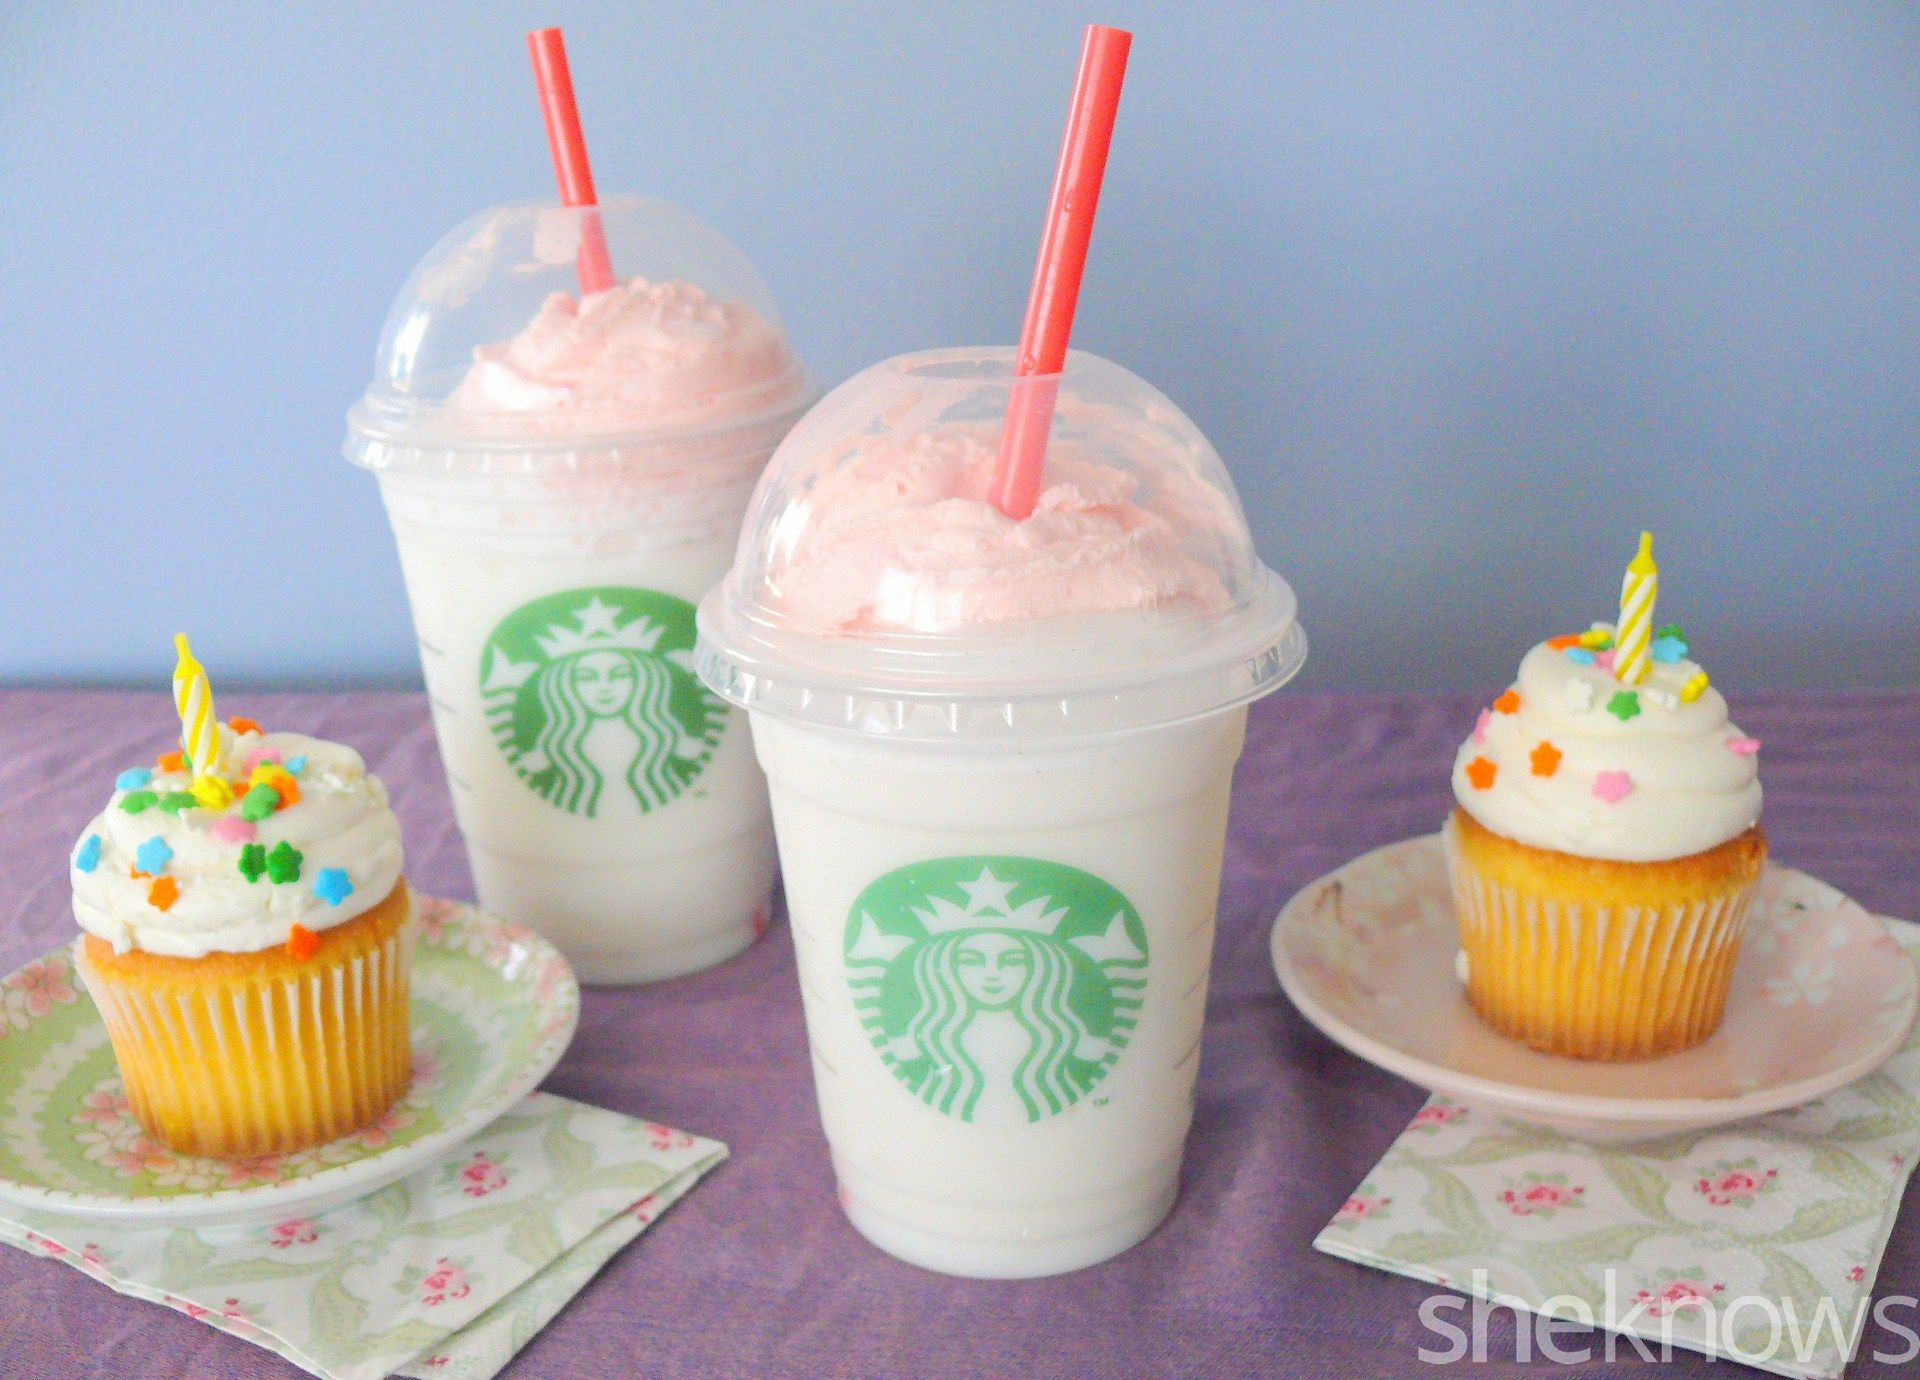 Cake Birthday Ingredients Frappuccino